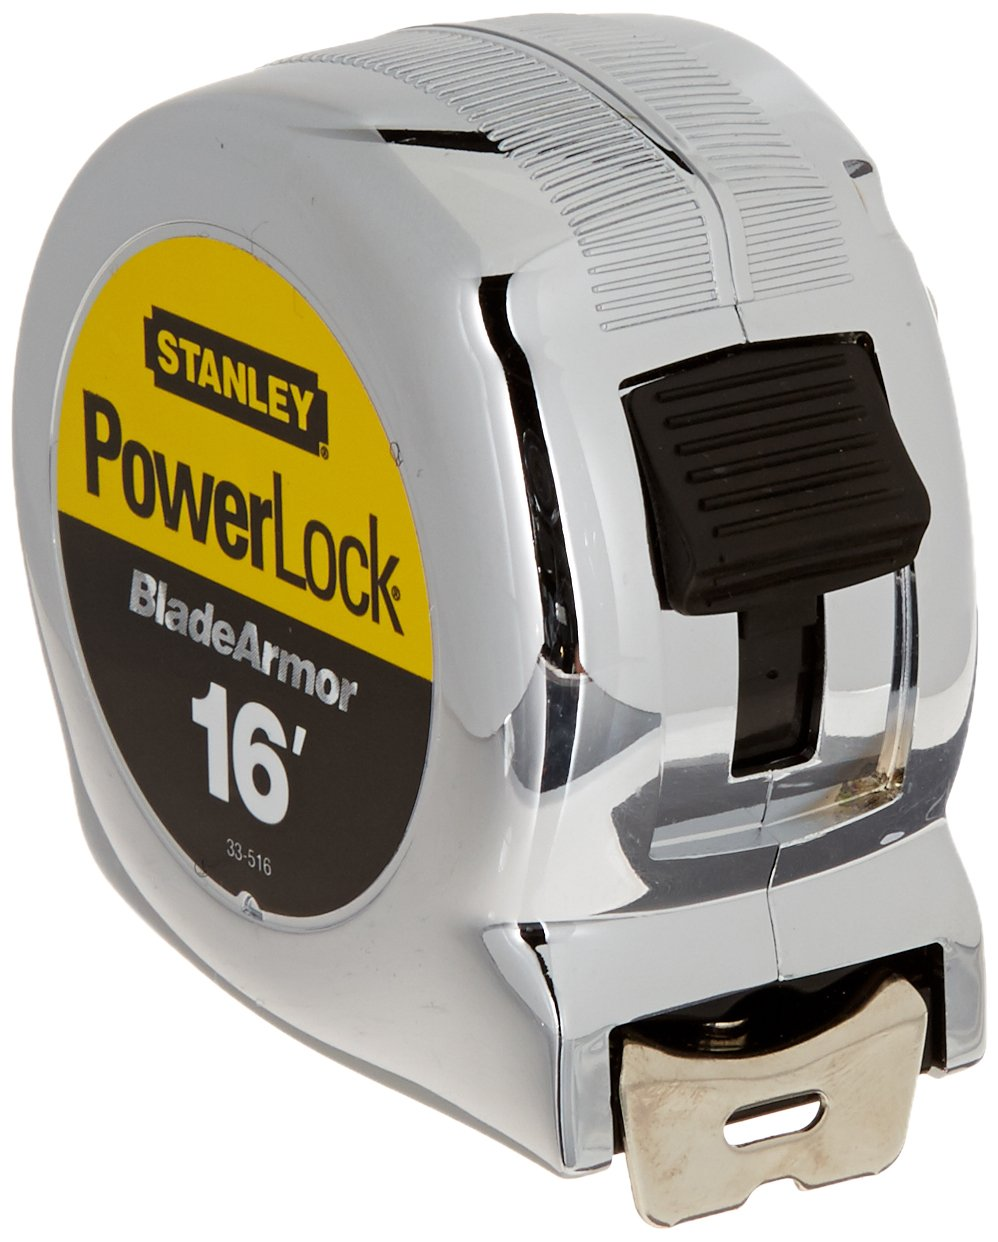 Stanley 33 516 Powerlock Tape Rule Reinforced with Blade Armor Coating 16 Feet x 1 Inch Chrome